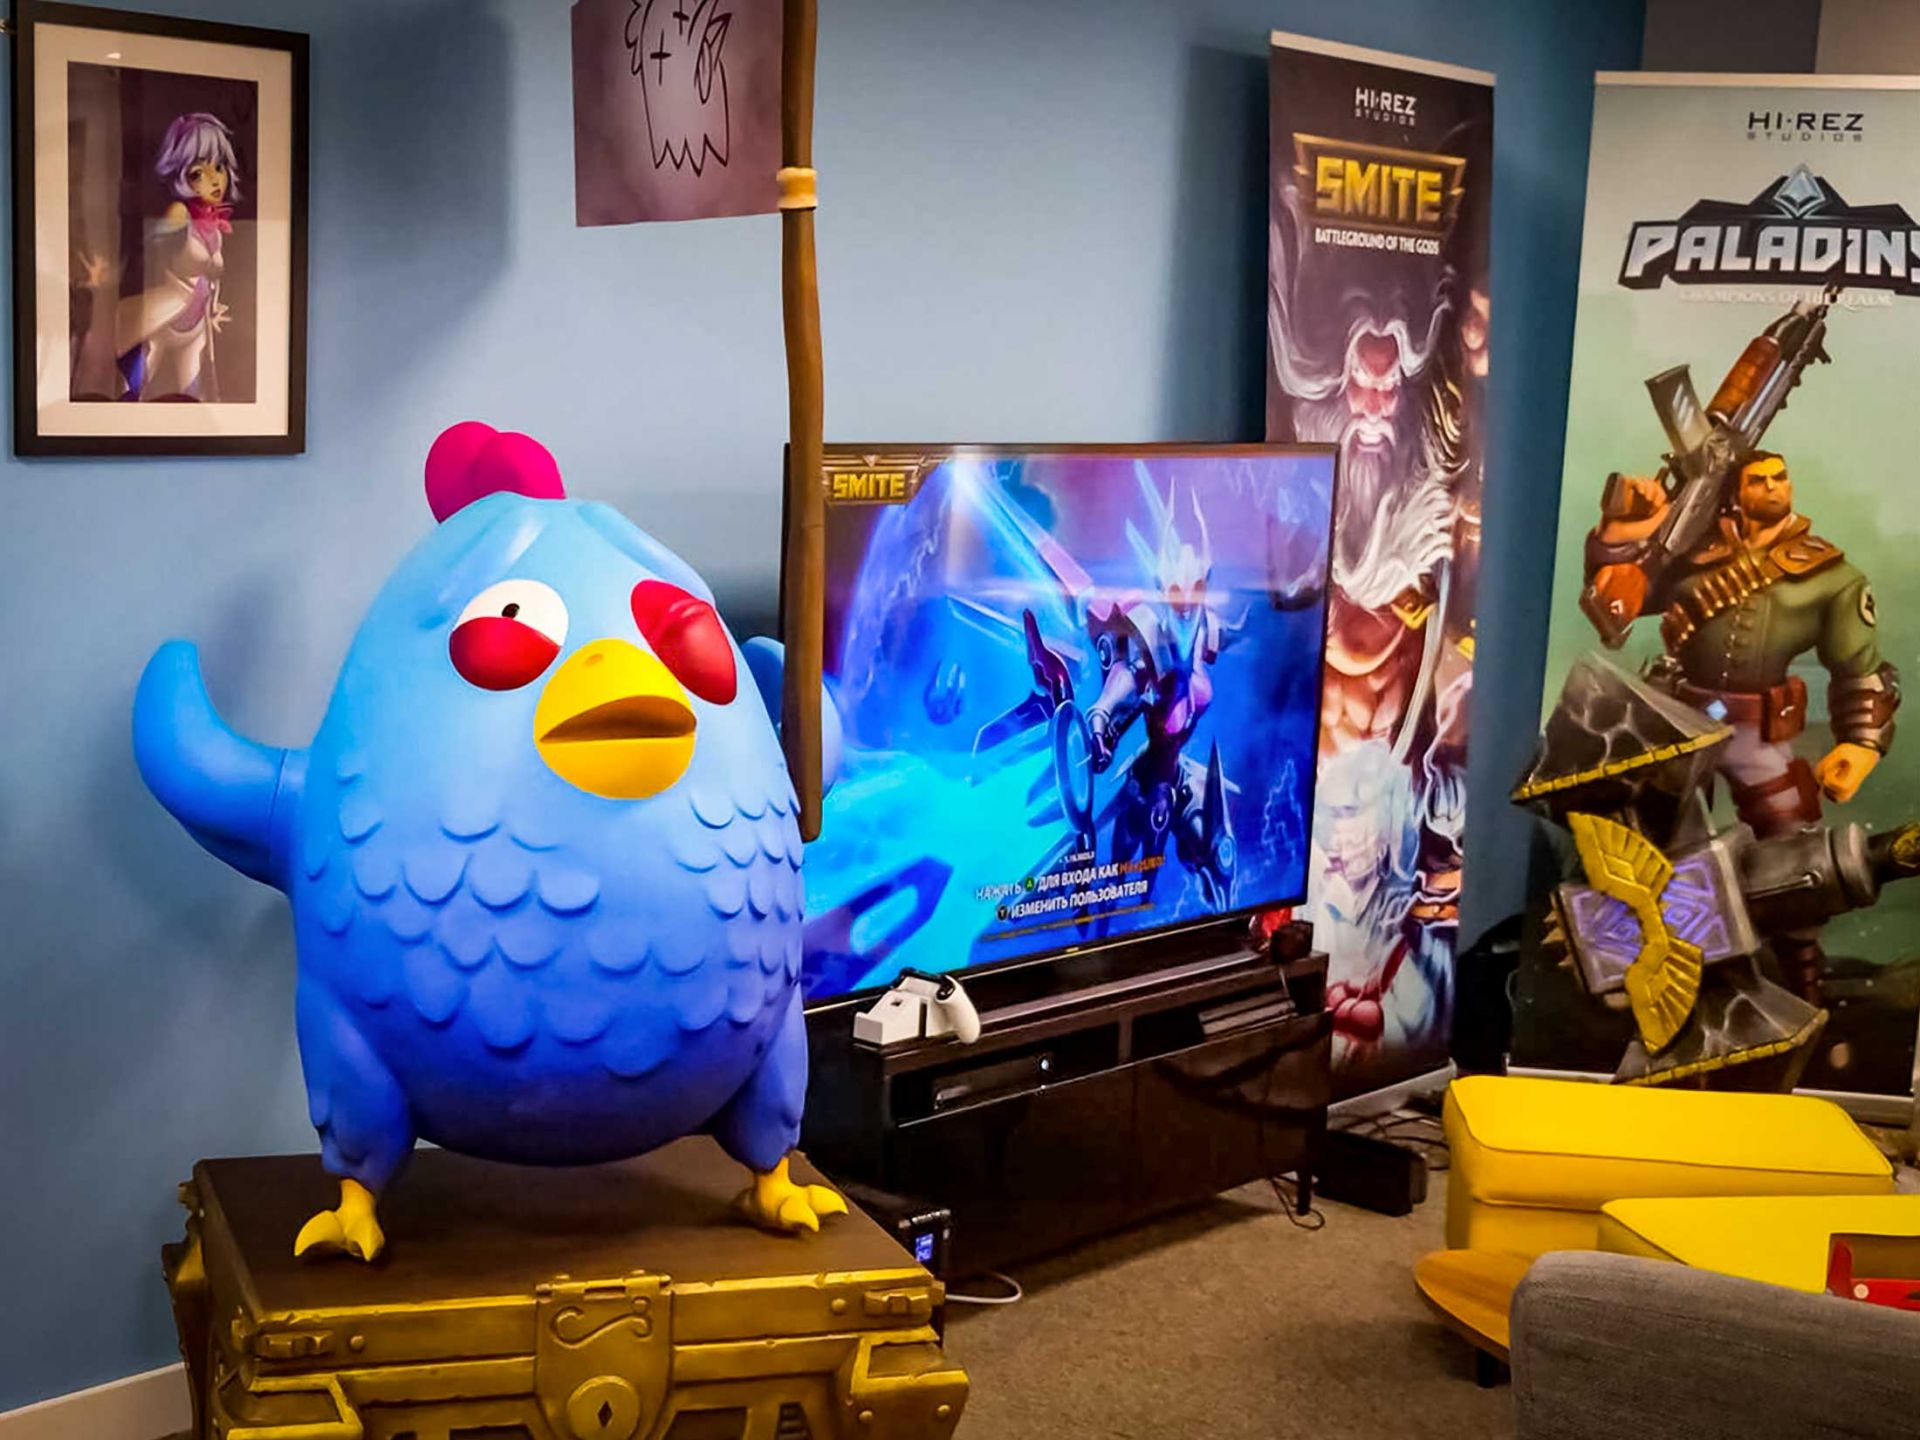 Chicken and hammer props on display in a games room.